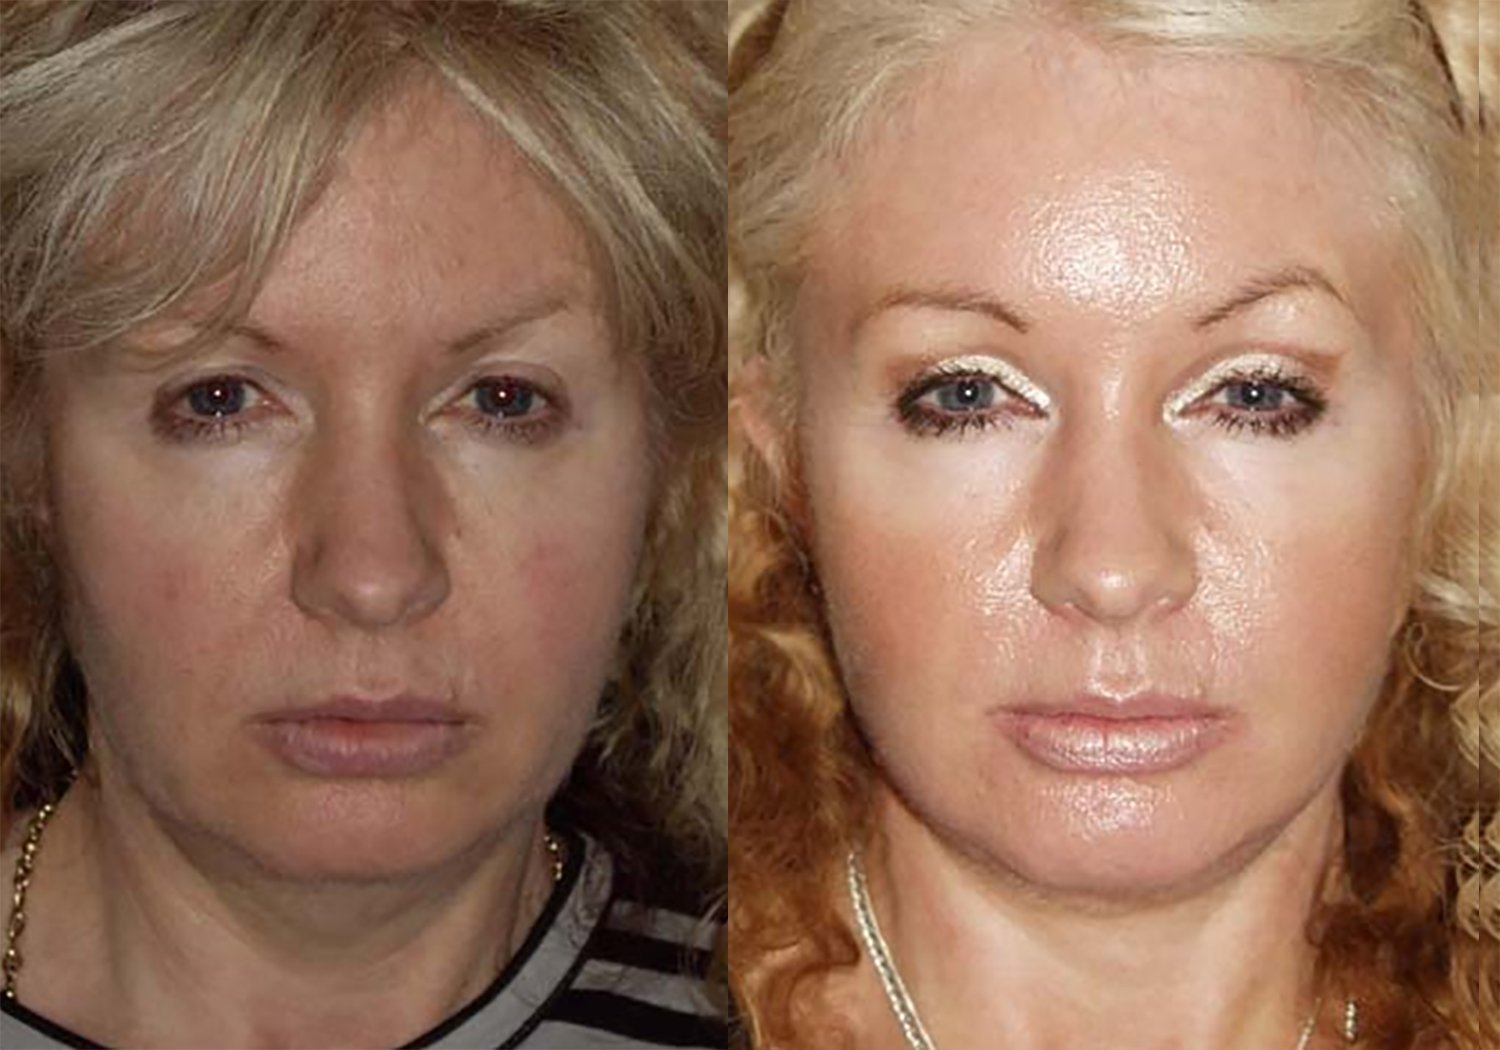 50-year-old facelift upper eyelids one year, prior facelift 10 yrs before, front